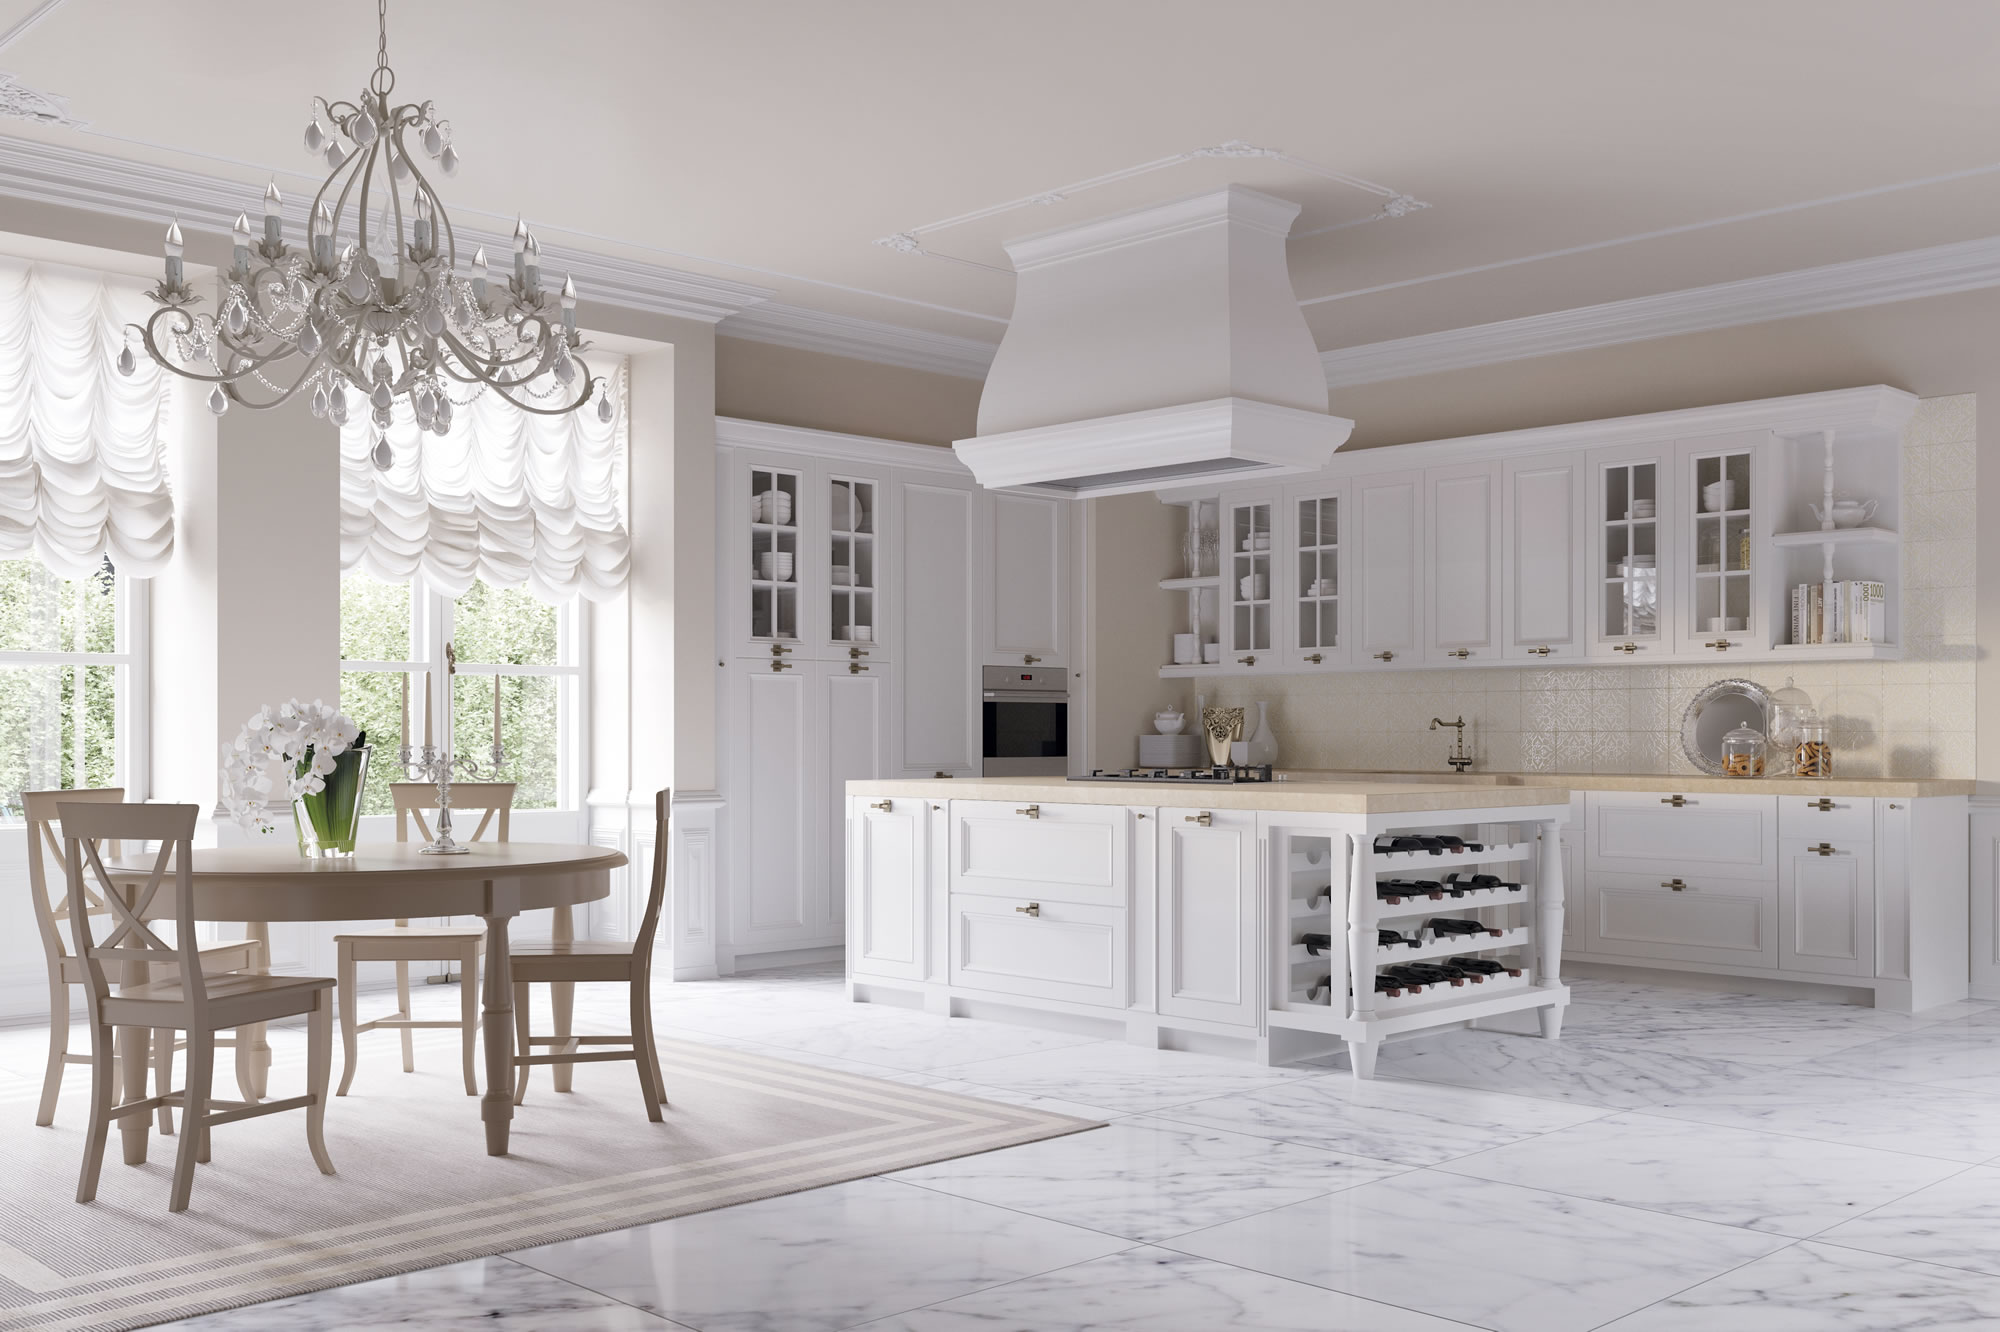 Cucine eleganti barocche cucine bianche country chic for Casa country chic